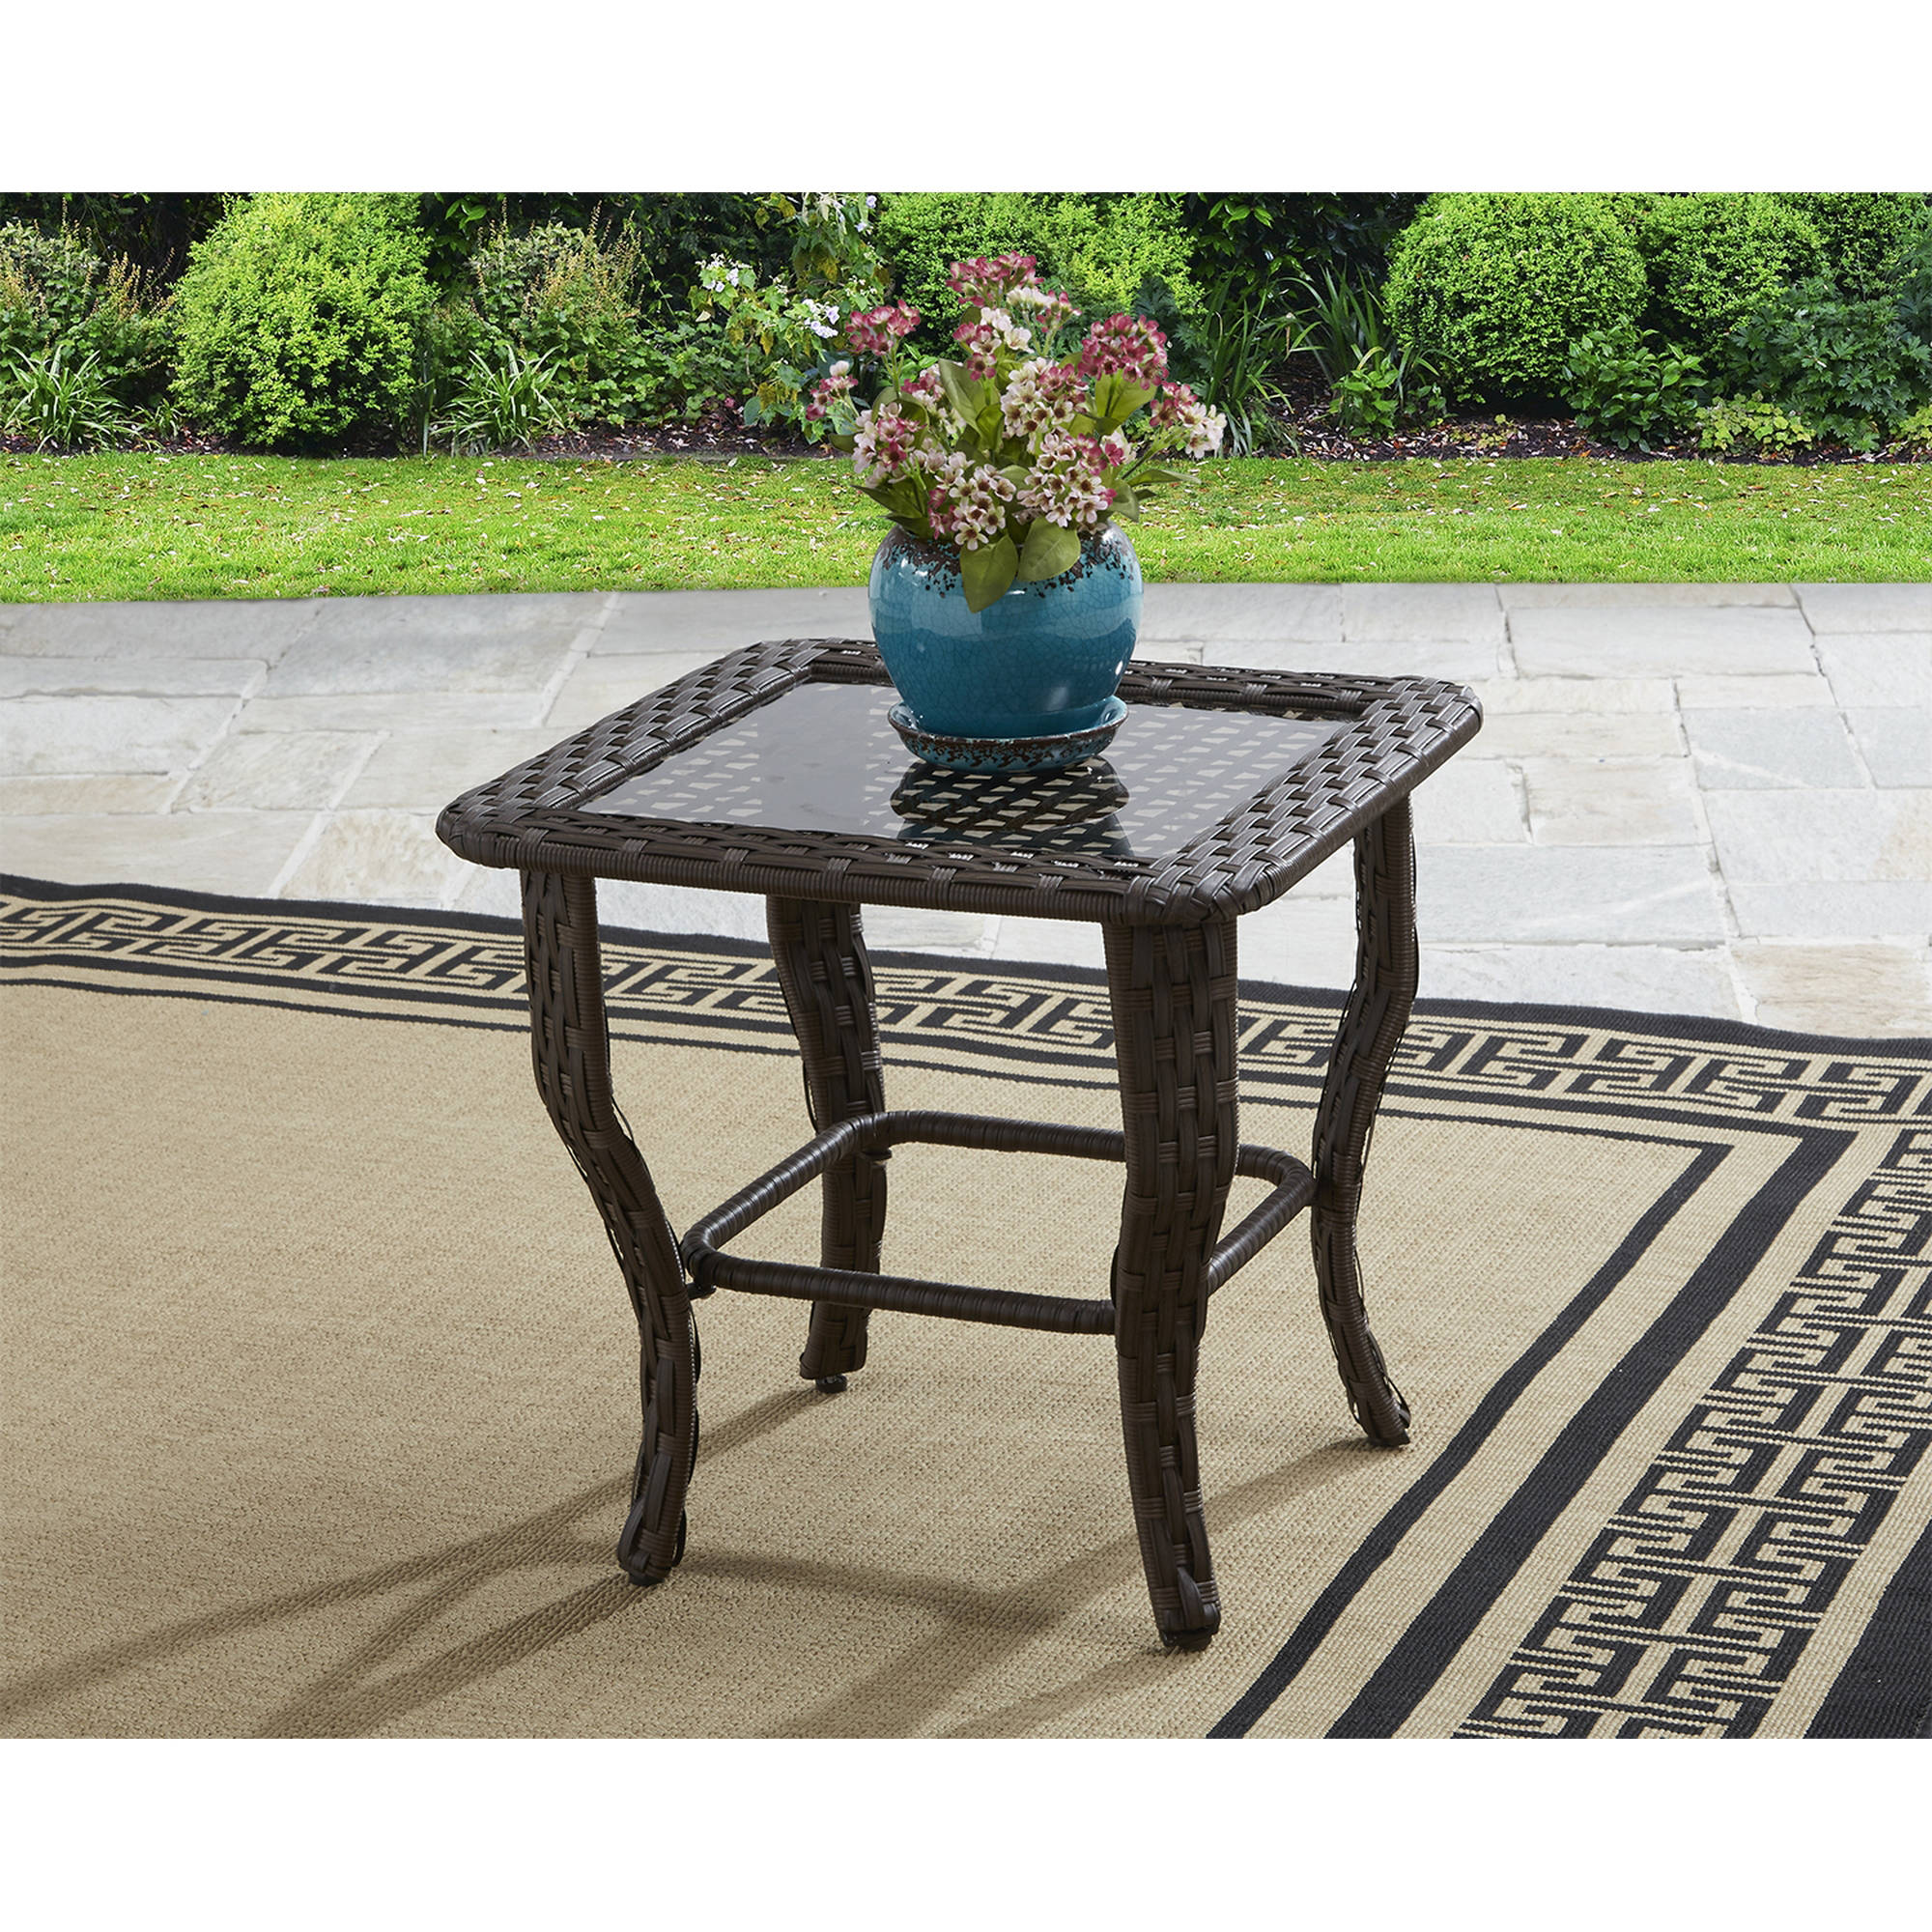 better homes and gardens colebrook outdoor glass top side table metal diy living room rustic industrial end teak garden furniture transition trim hampton bay piece coffee set